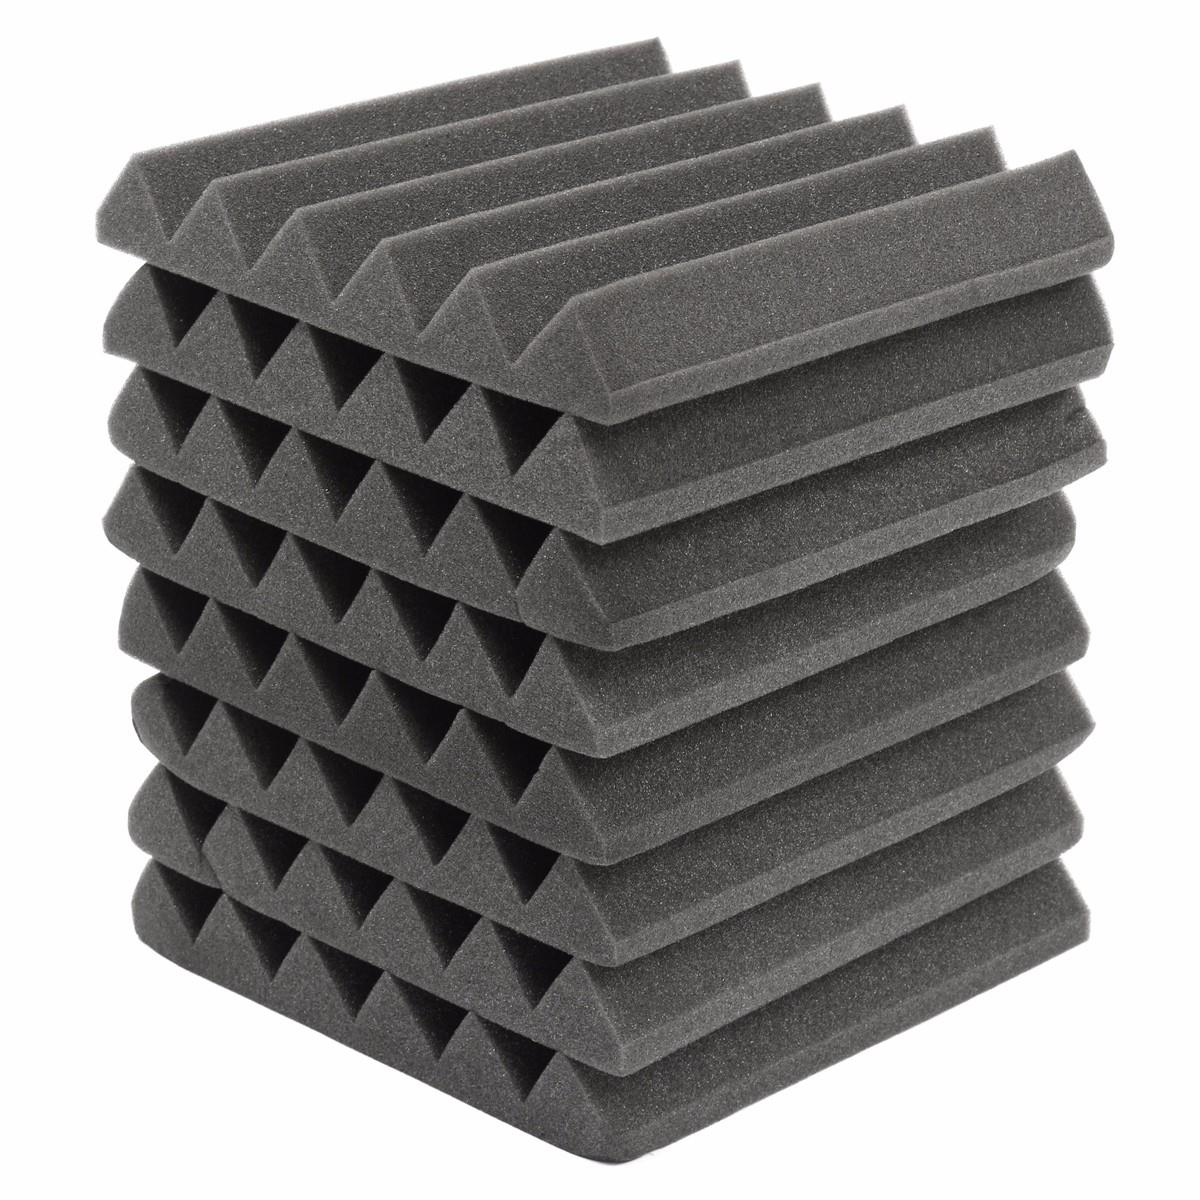 8Pcs 305 x 305 x 45mm Soundproofing Foam Acoustic Foam Sound Treatment Studio Room Absorption Wedge Tiles Polyurethane foam коробка для мушек snowbee slit foam compartment waterproof fly box x large